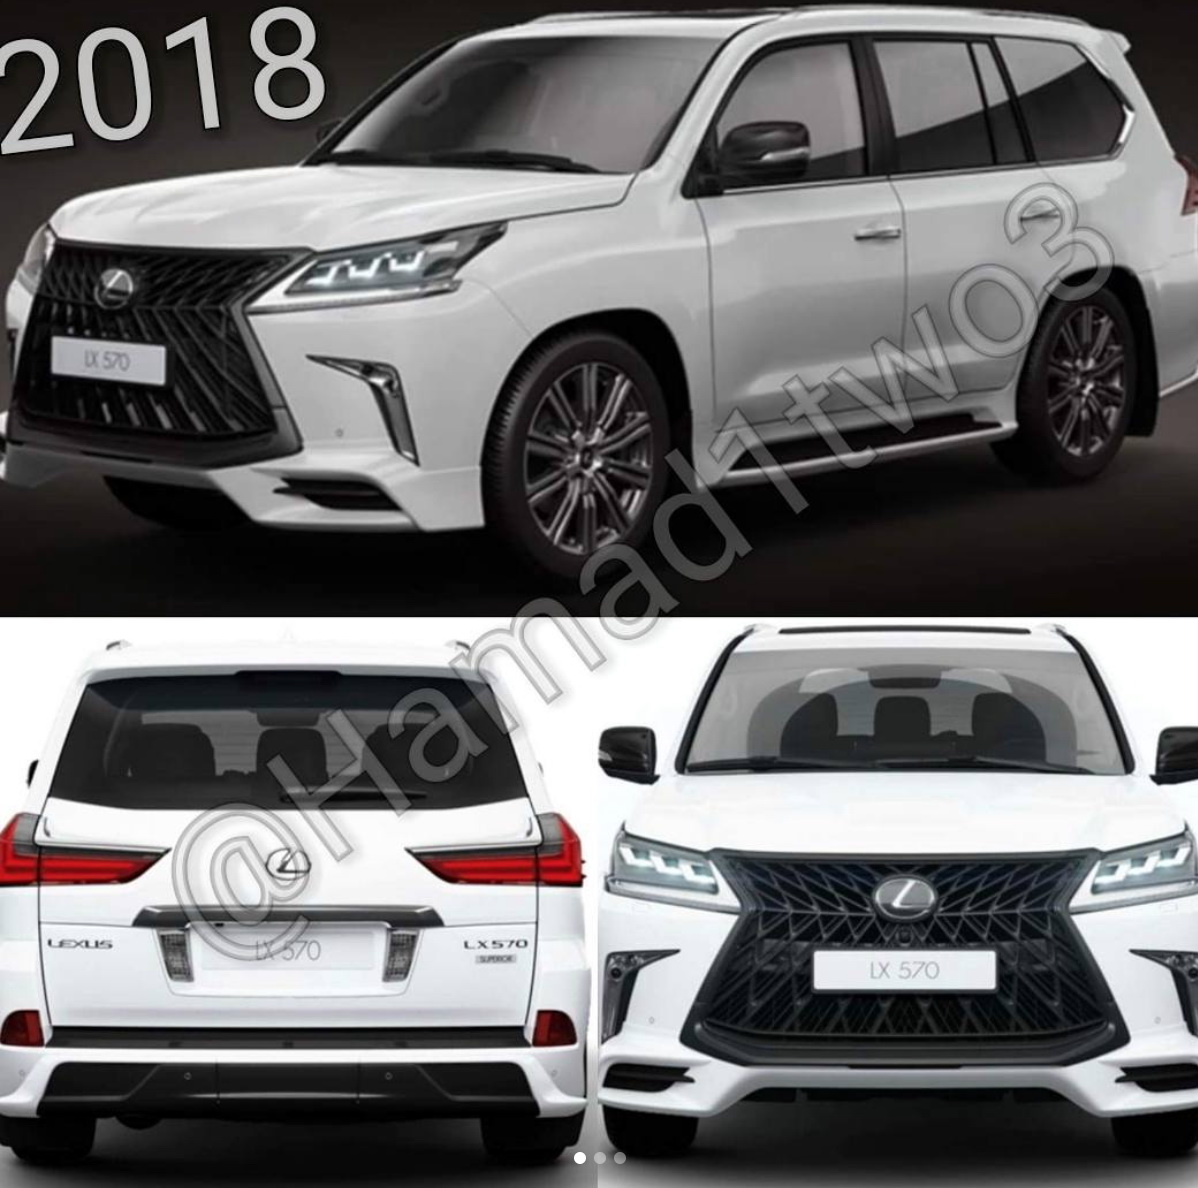 2018 lexus 570 lx. brilliant 2018 blocking ads can be devastating to sites you love and result in people  losing their jobs negatively affect the quality of content with 2018 lexus 570 lx u